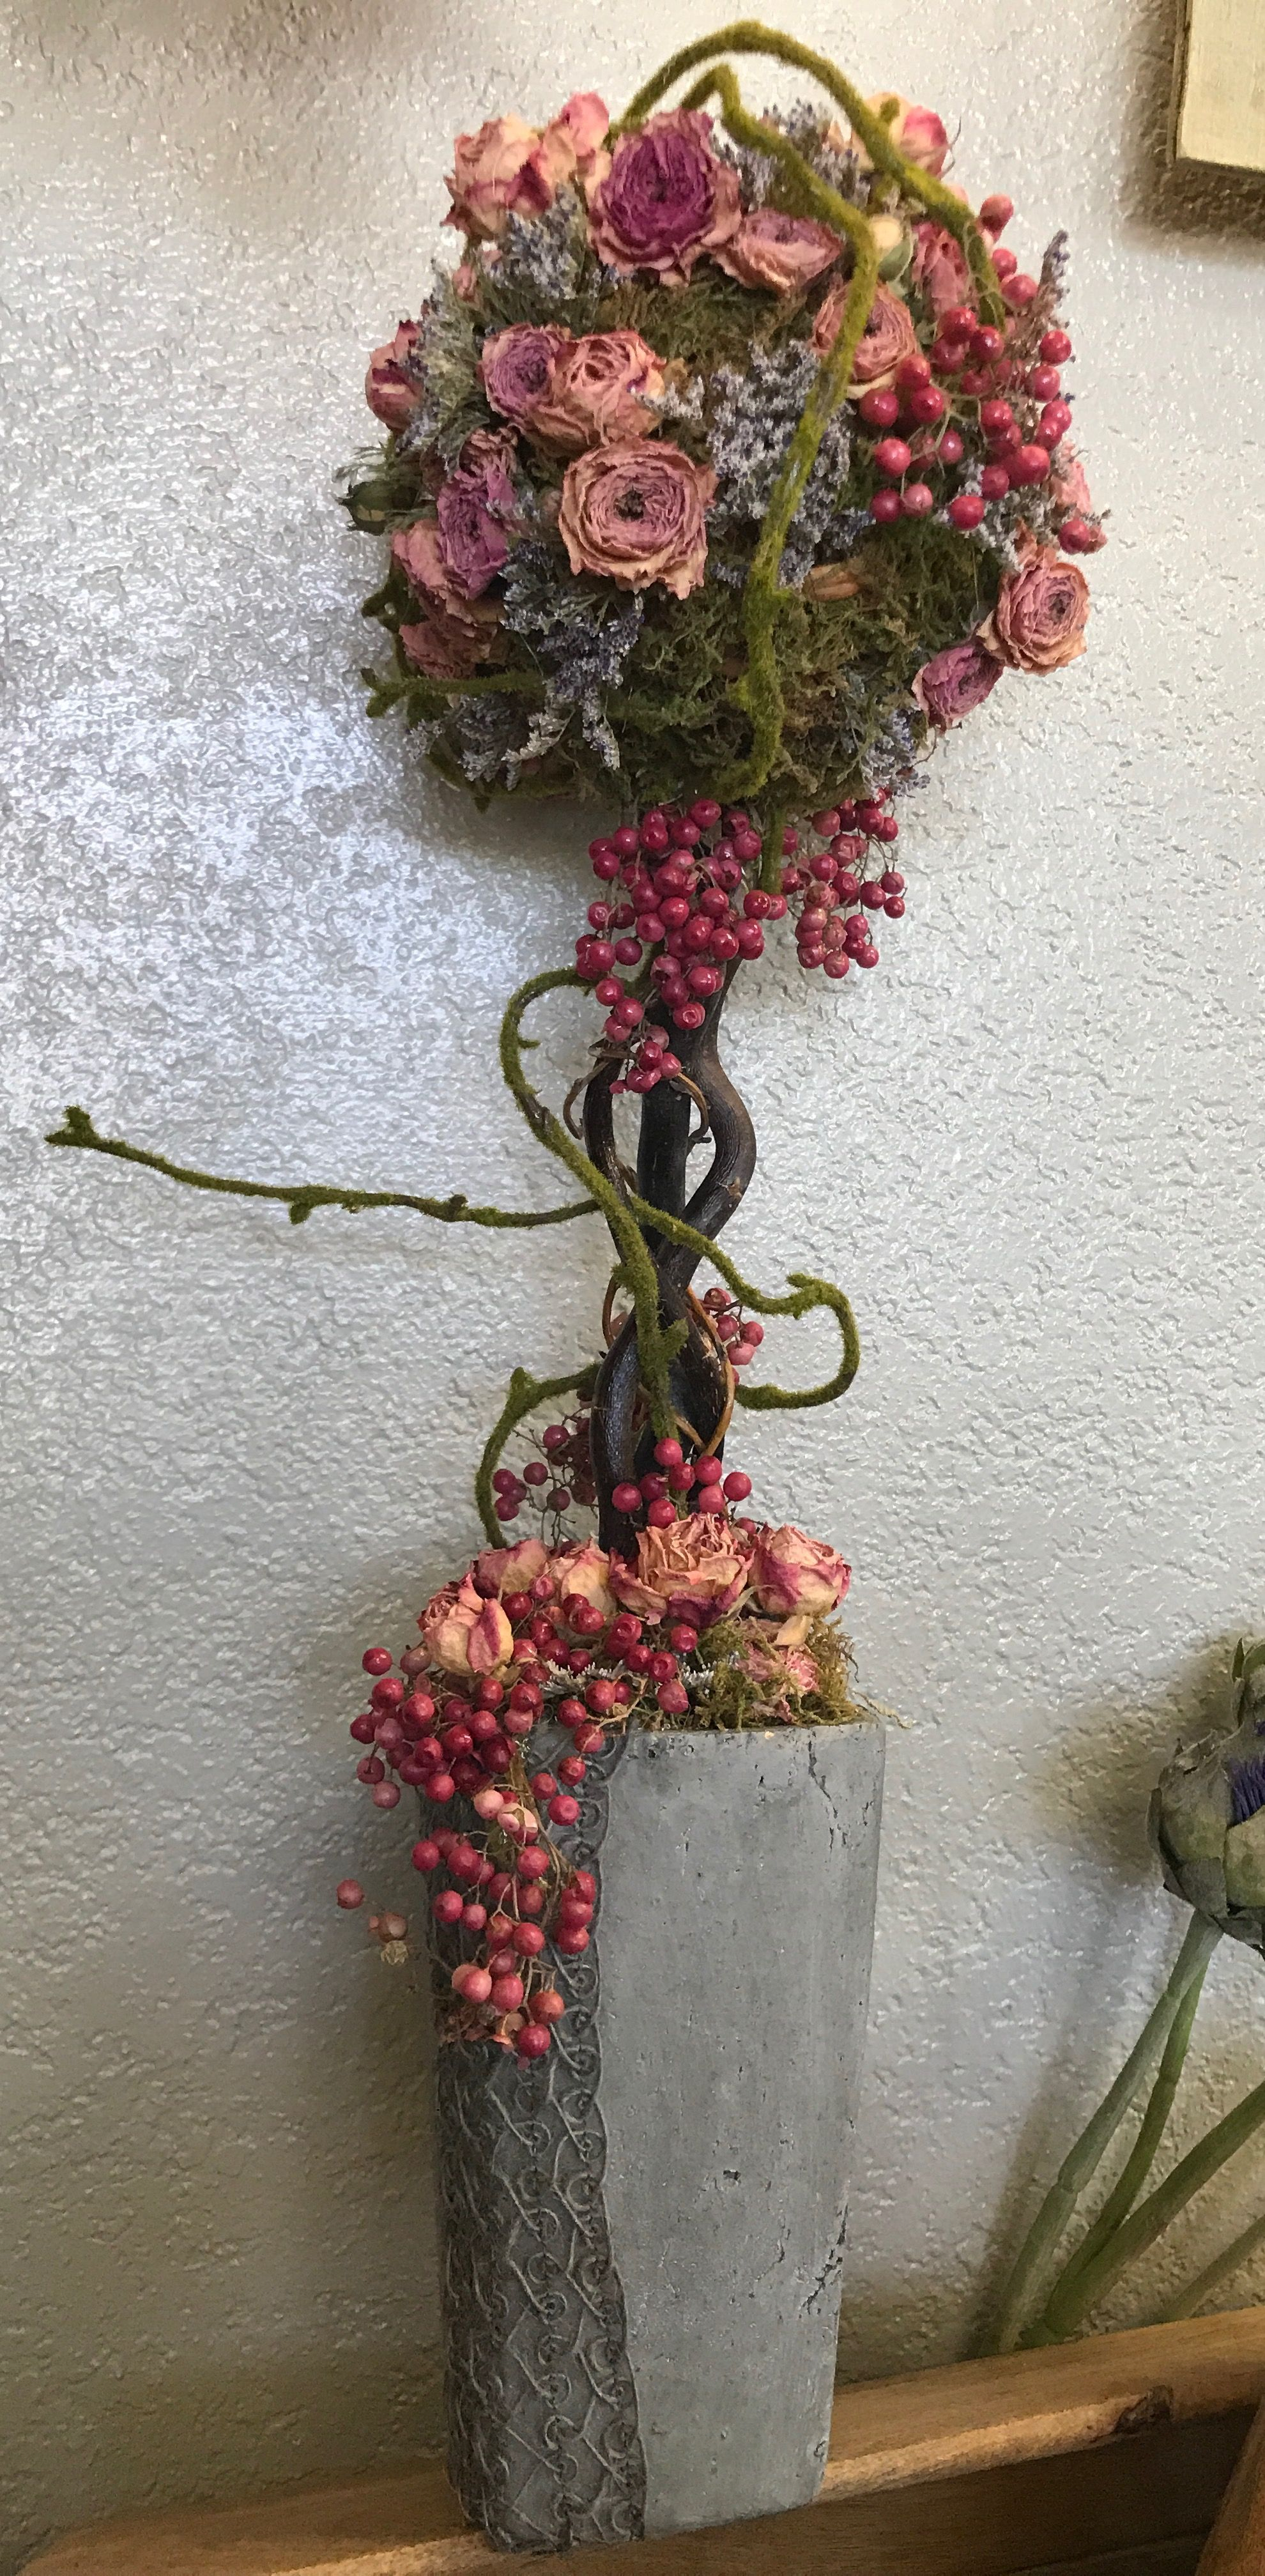 Pin On Our Dried Flower Arrangements